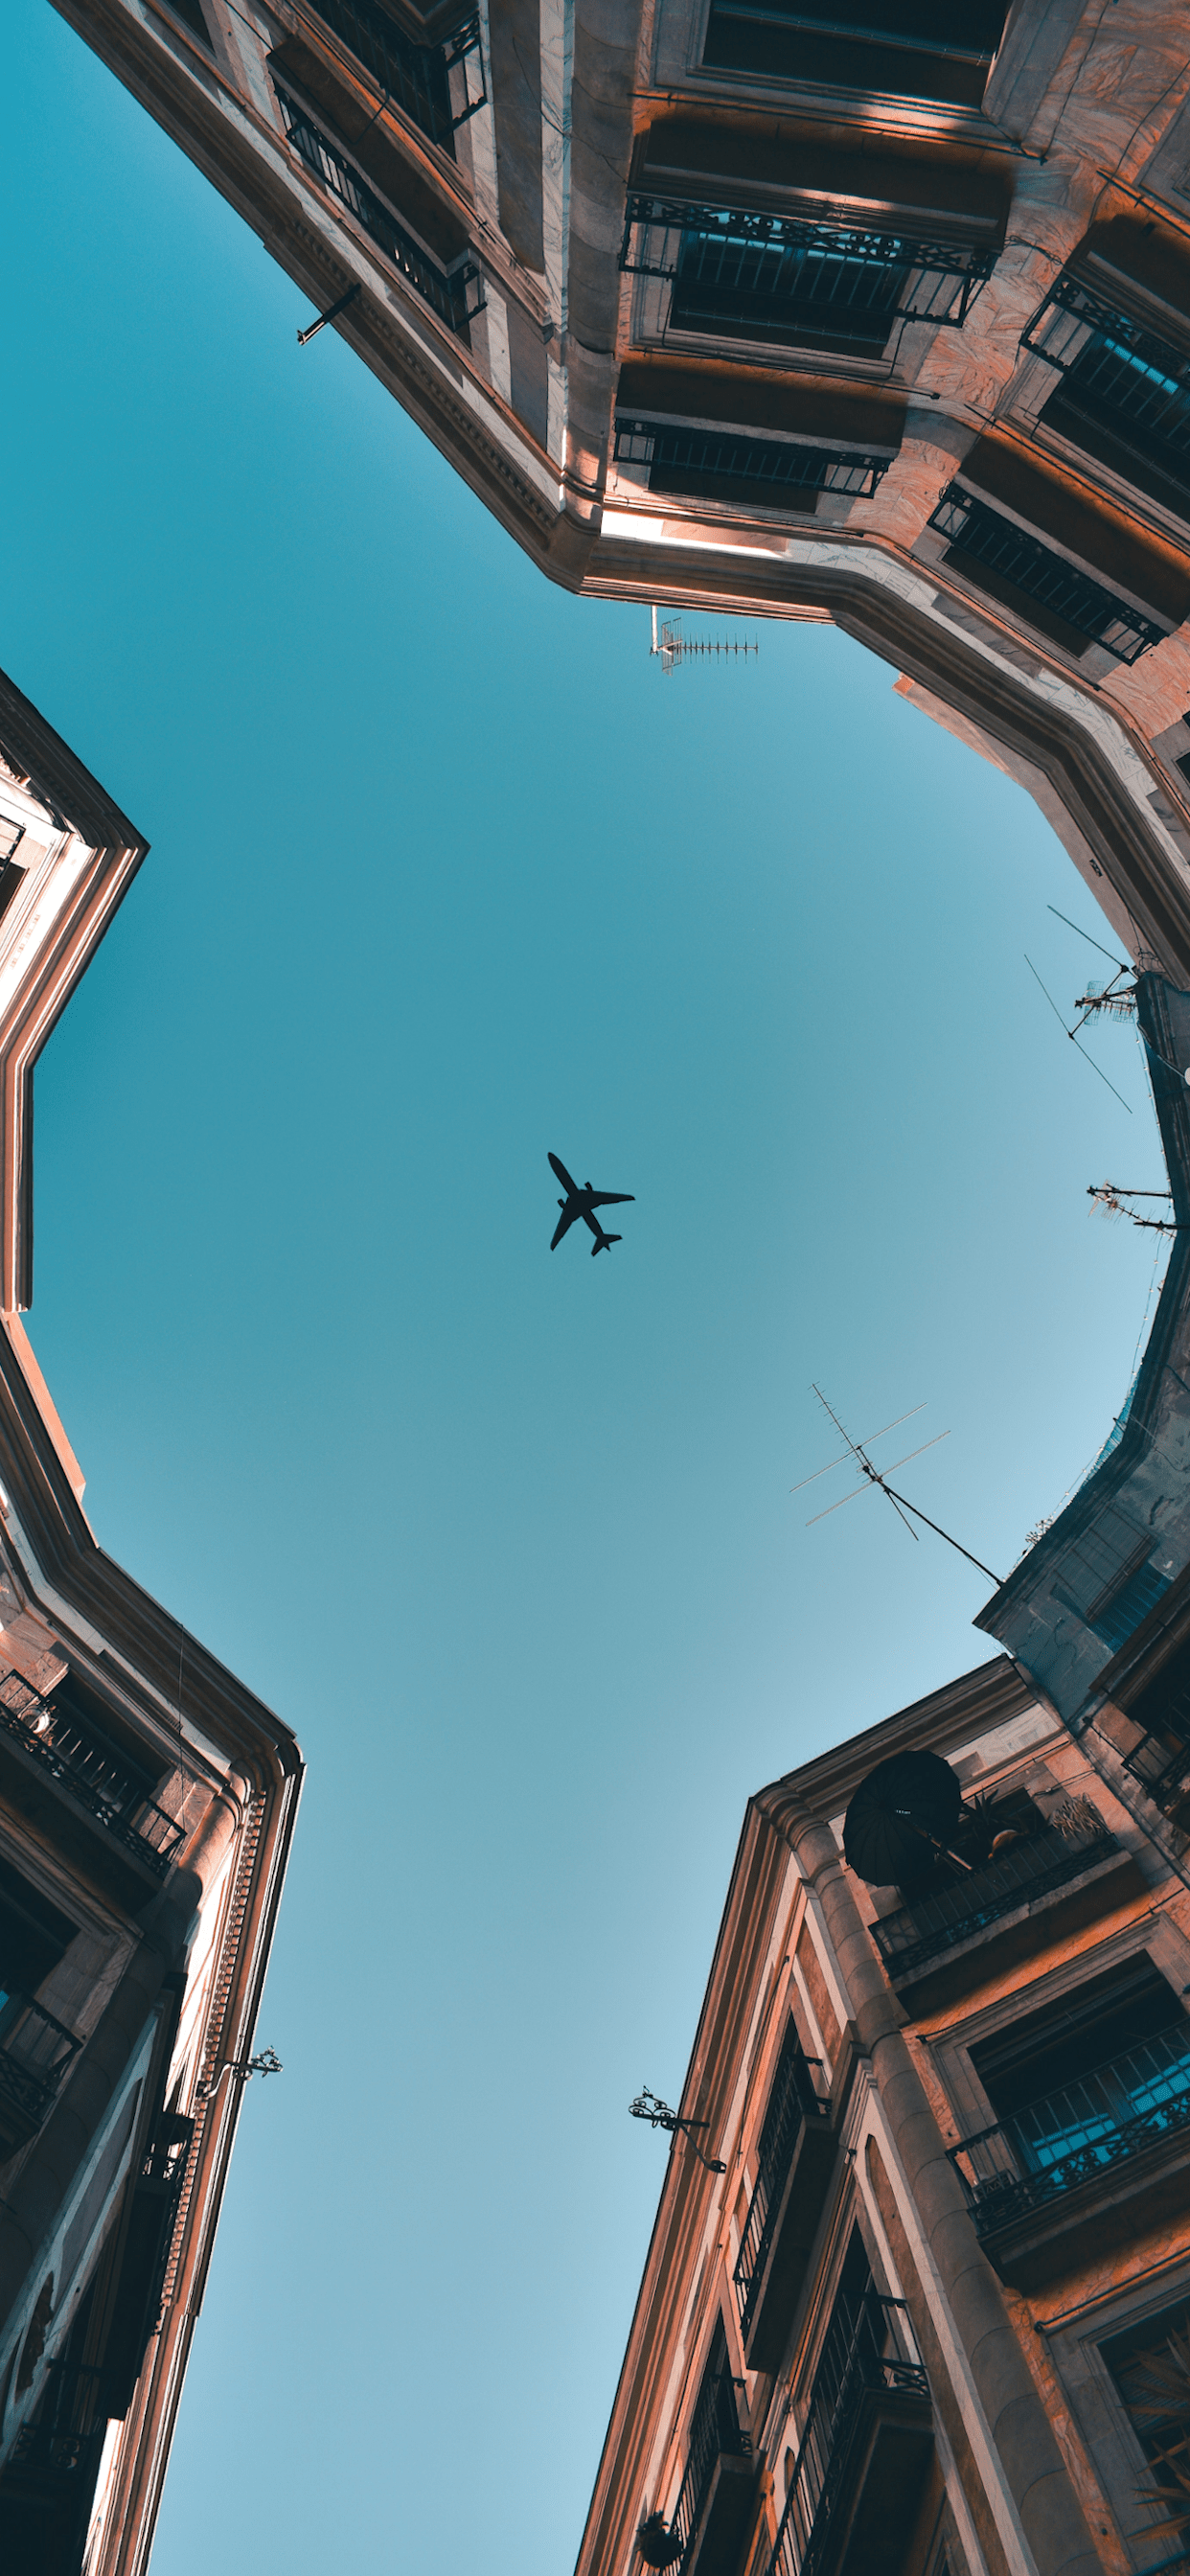 iPhone wallpapers airplane barcelona Airplane